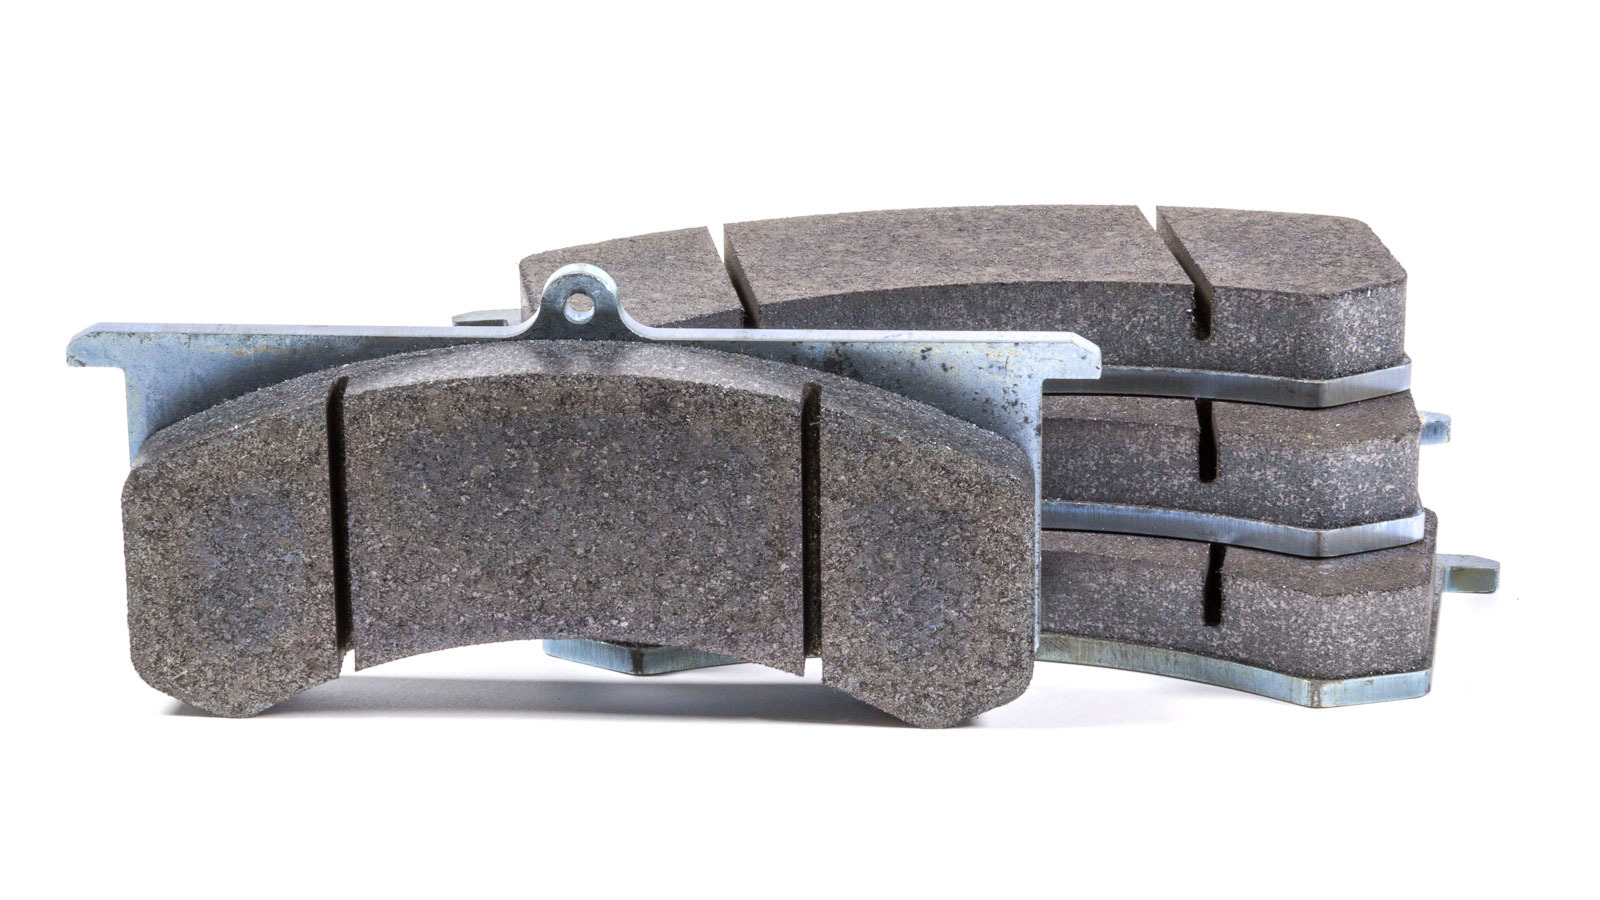 Wilwood 150-14774K Brake Pads, BP-30 Compound, Very High Friction, High Temperature, Wilwood Grand National / Grand National III Calipers, Set of 4